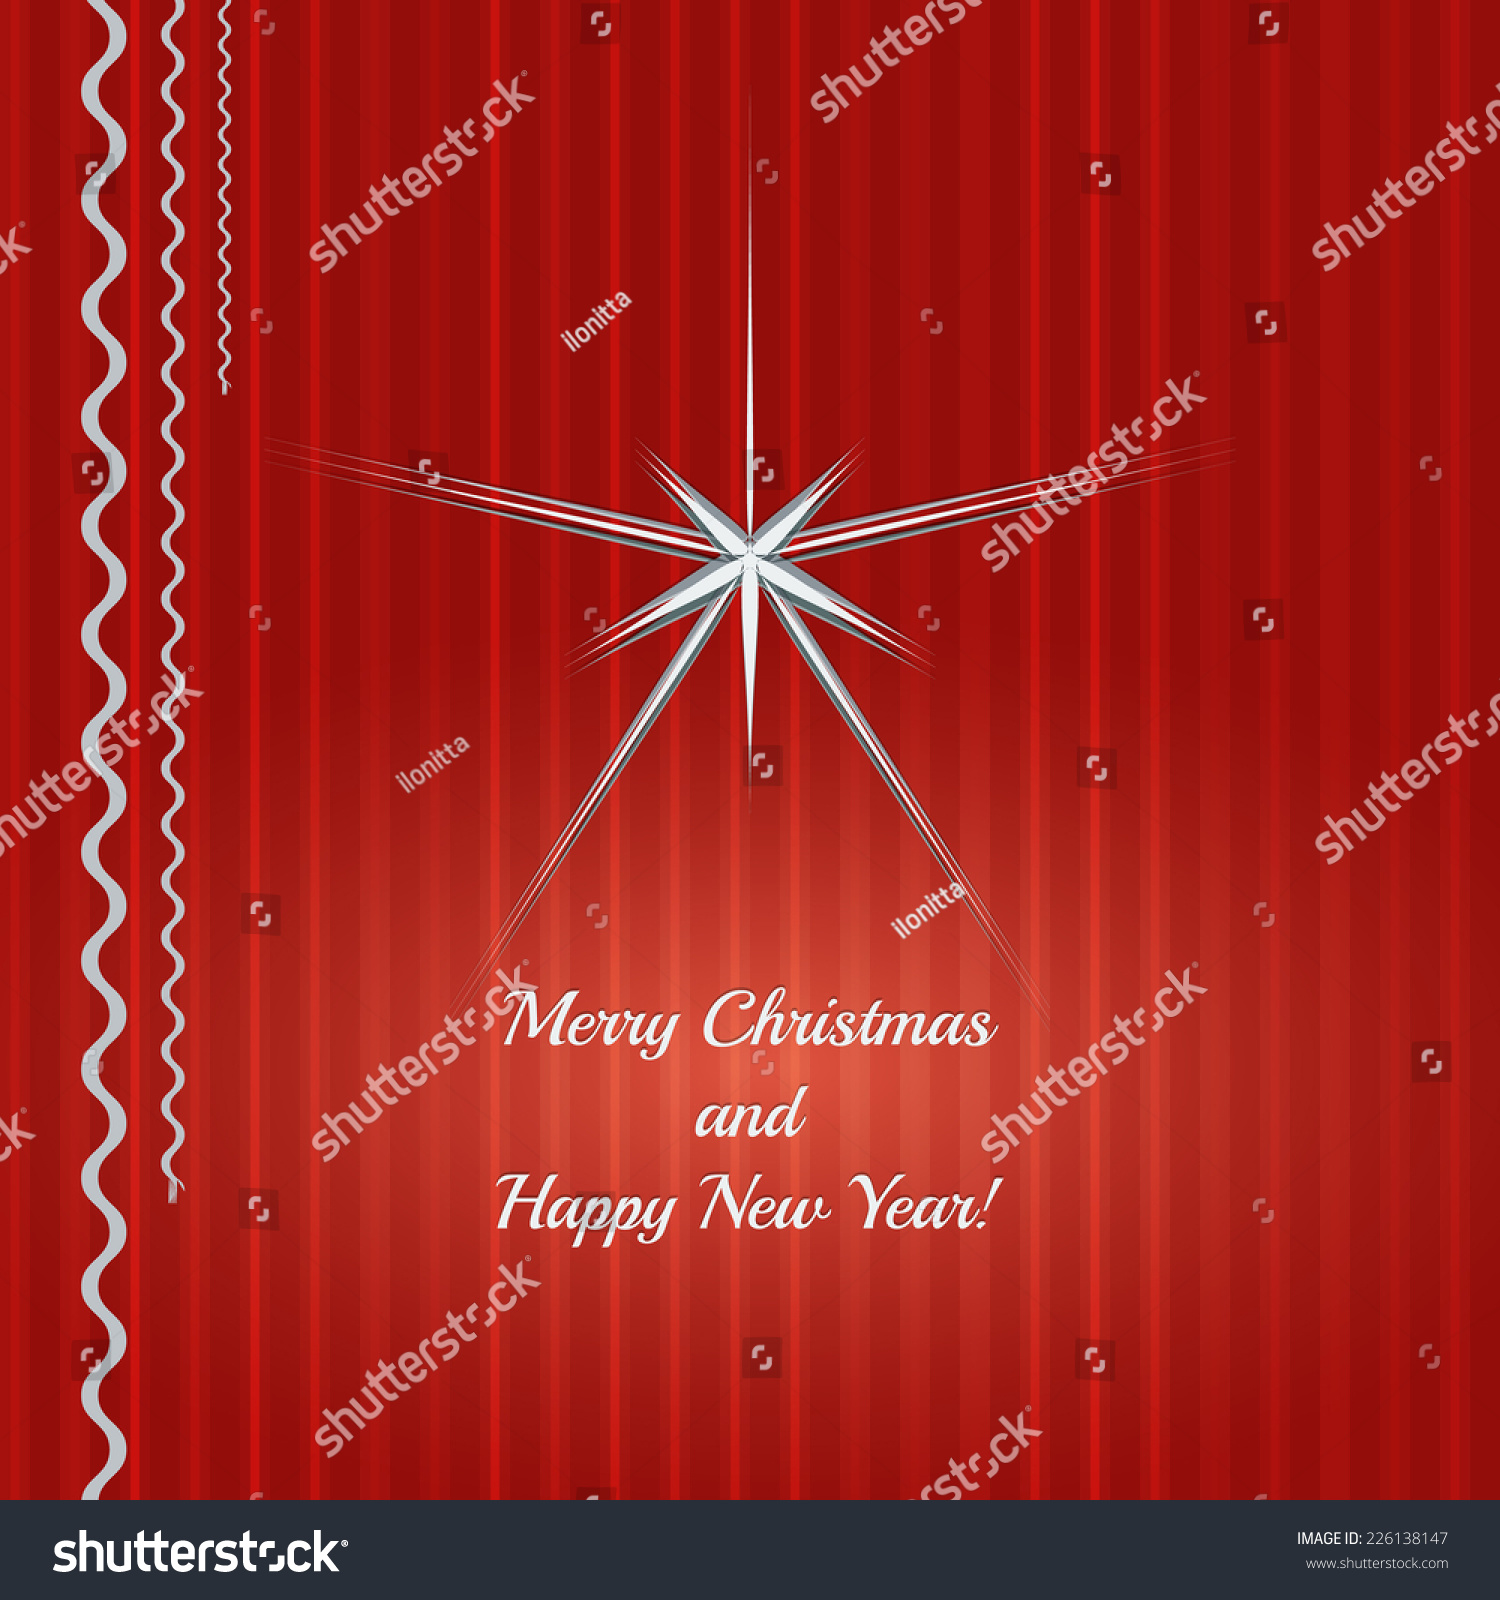 Merry christmas happy new year greeting stock vector 226138147 merry christmas and happy new year greeting card with red vertical stripped lines background and kristyandbryce Choice Image